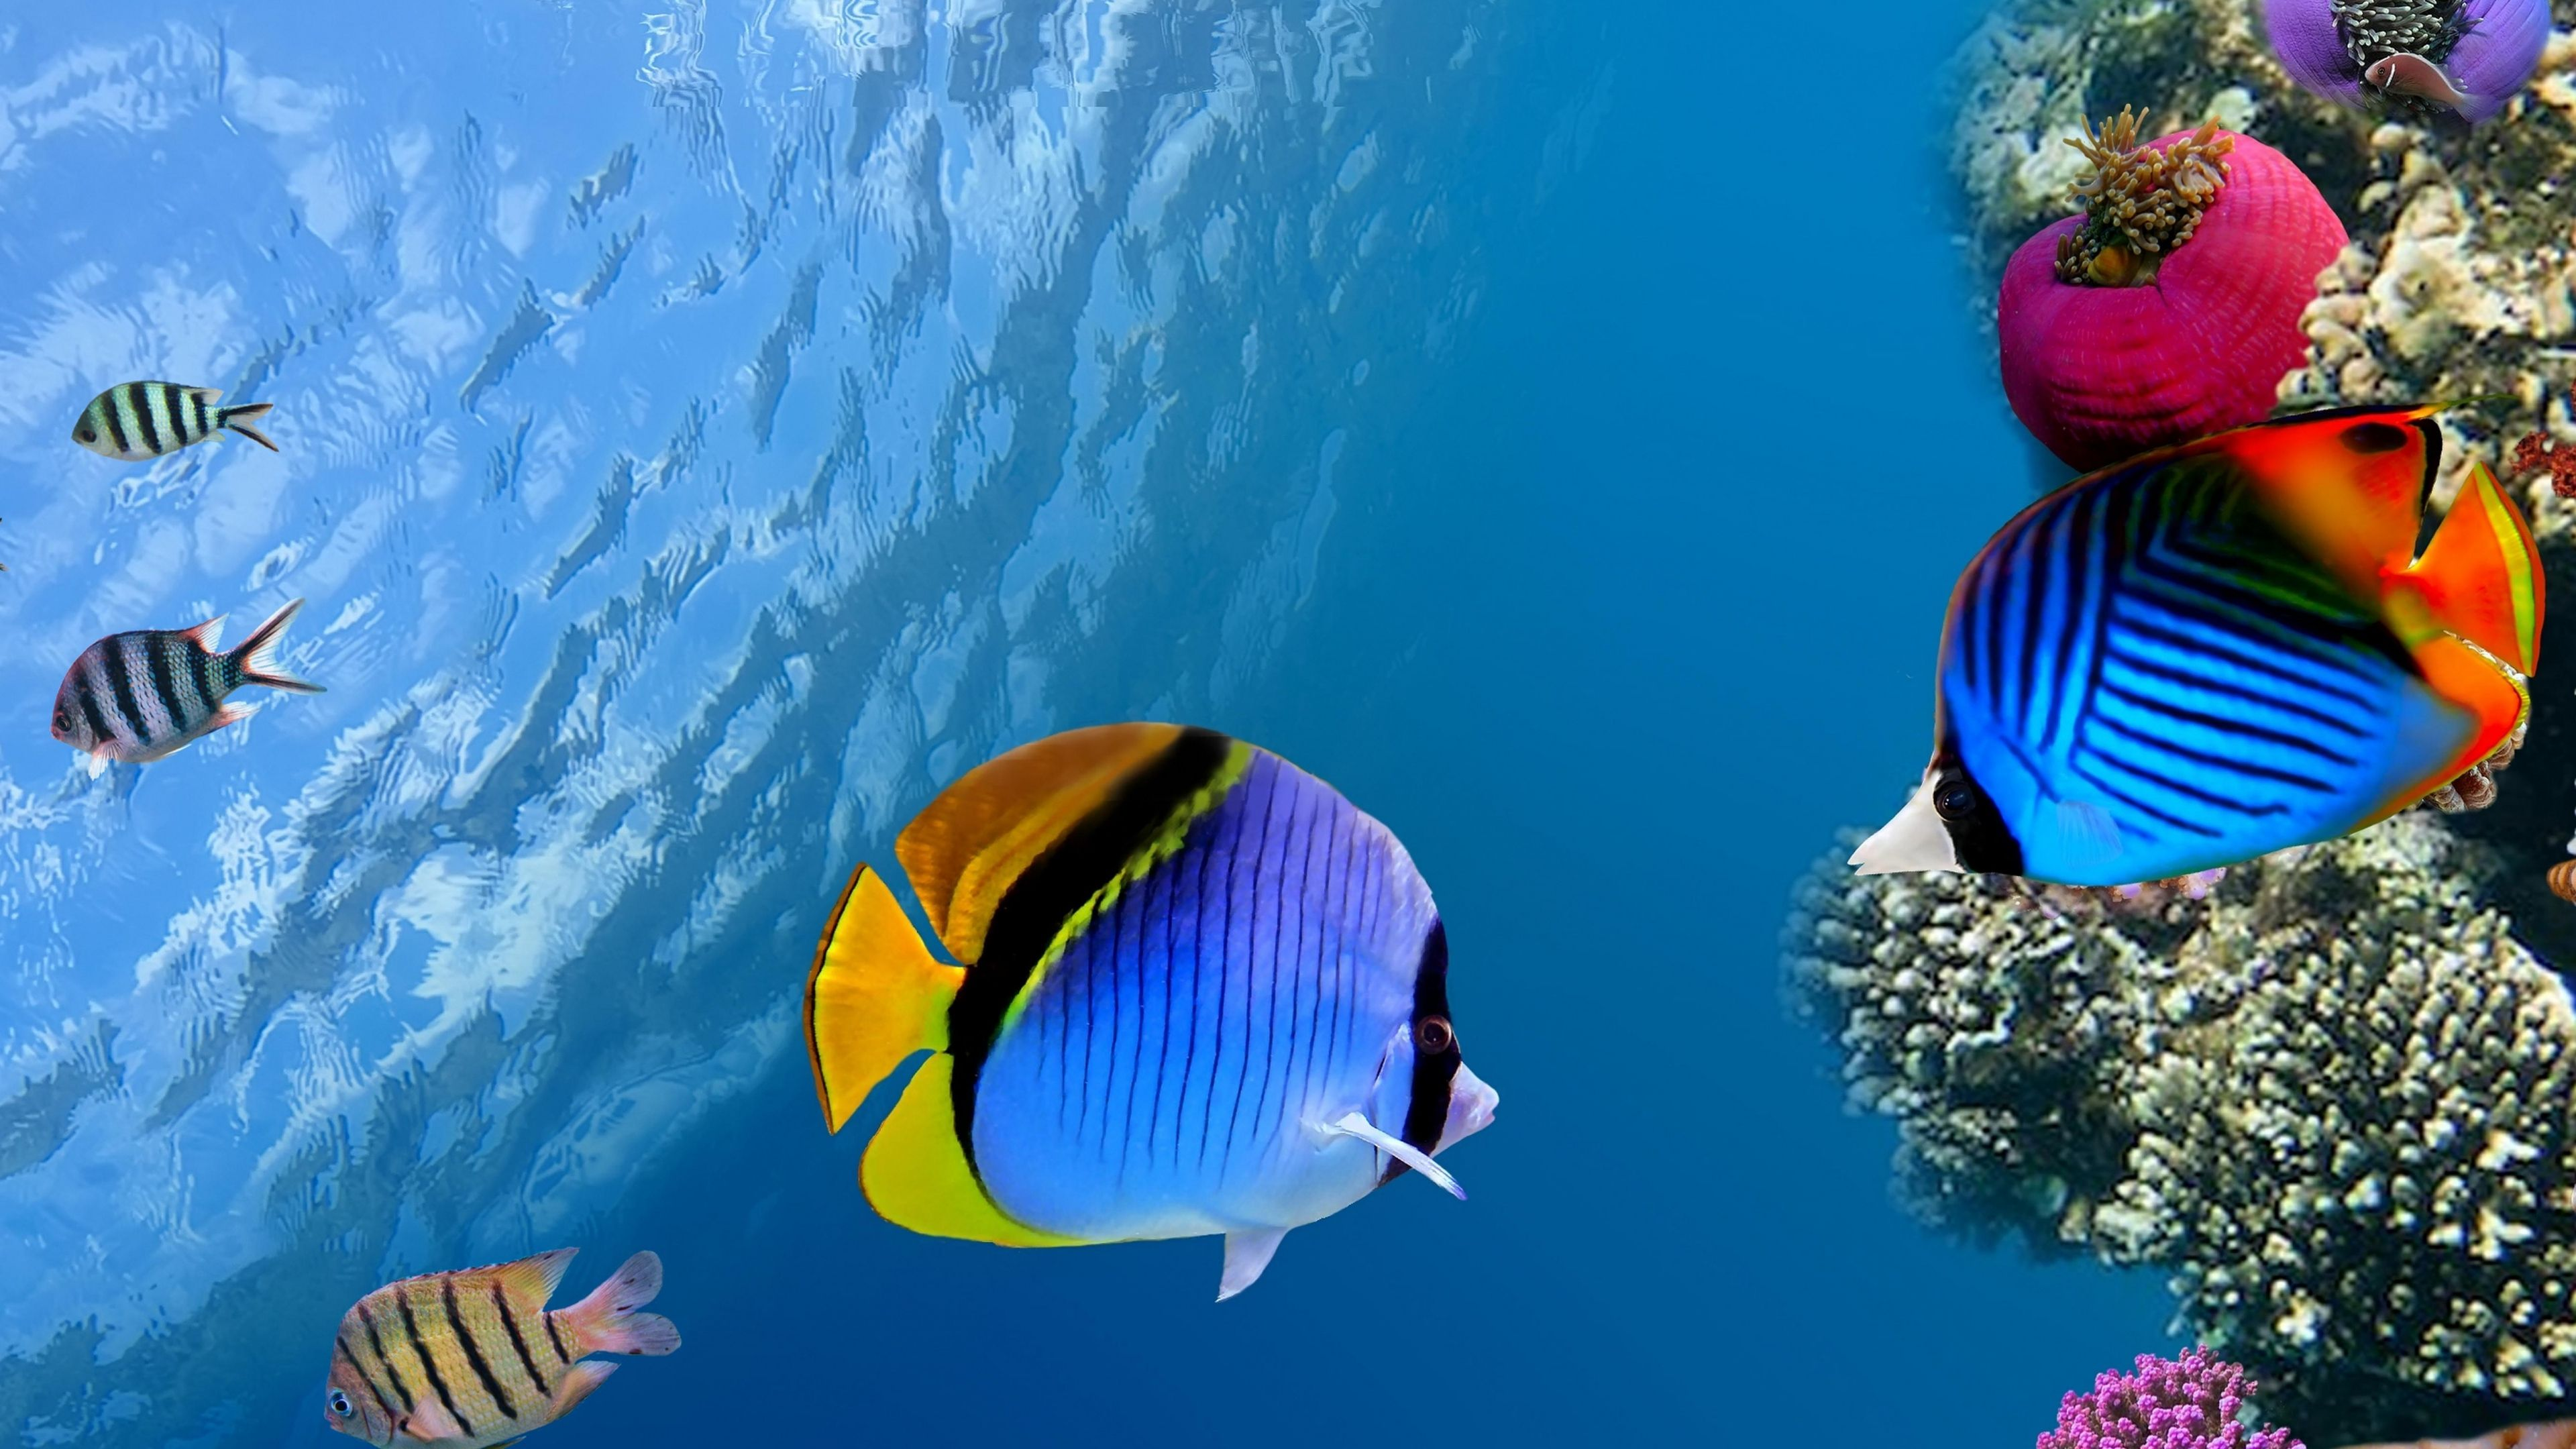 Download Wallpaper 3840x2160 Under Water Coral Fish Sea Ocean Underwater Wallpaper Animal Wallpaper Ocean Wallpaper